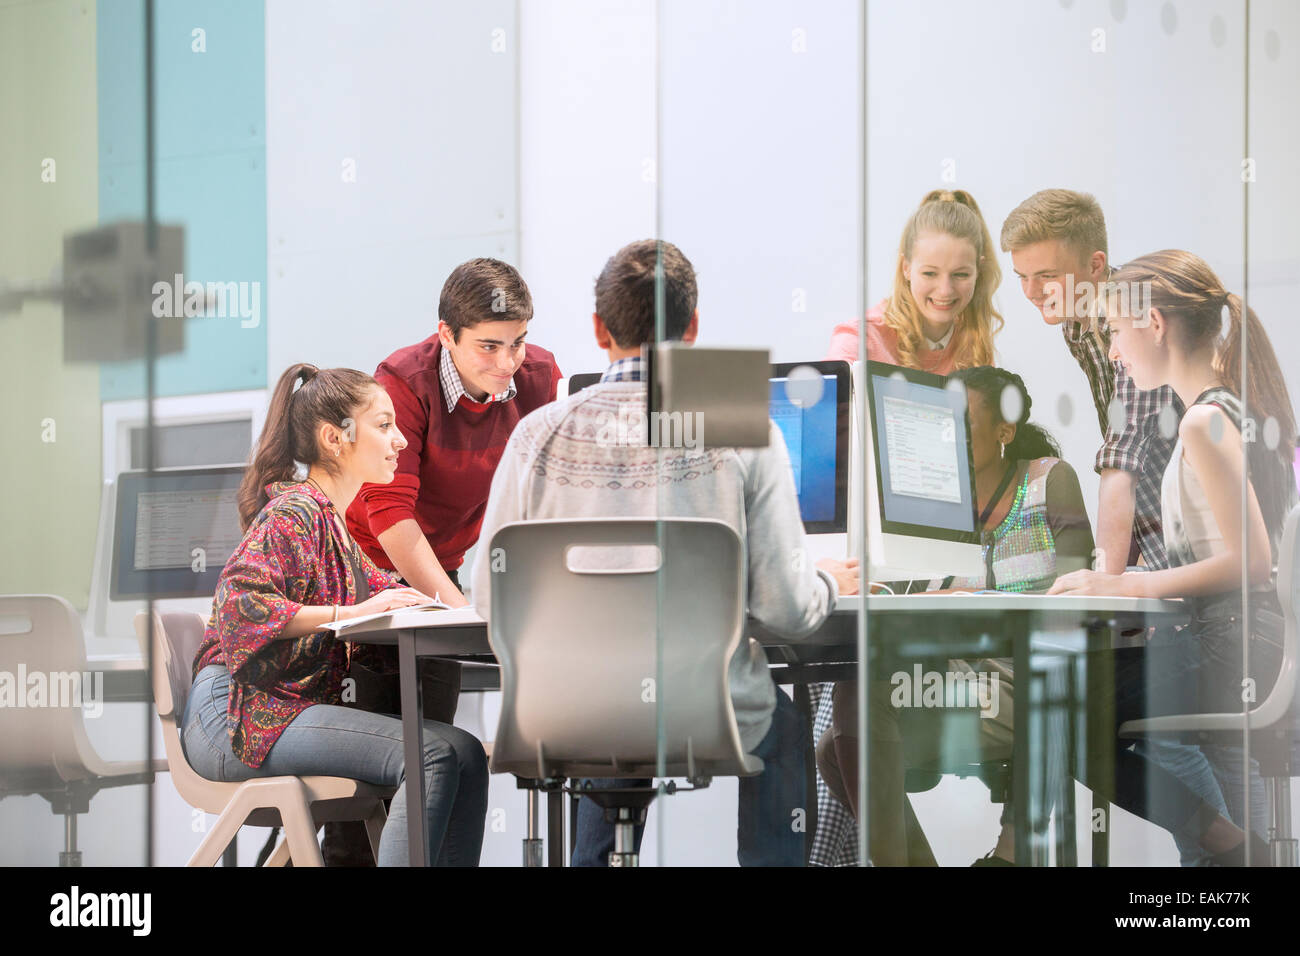 Students working with computers behind glass door Stock Photo